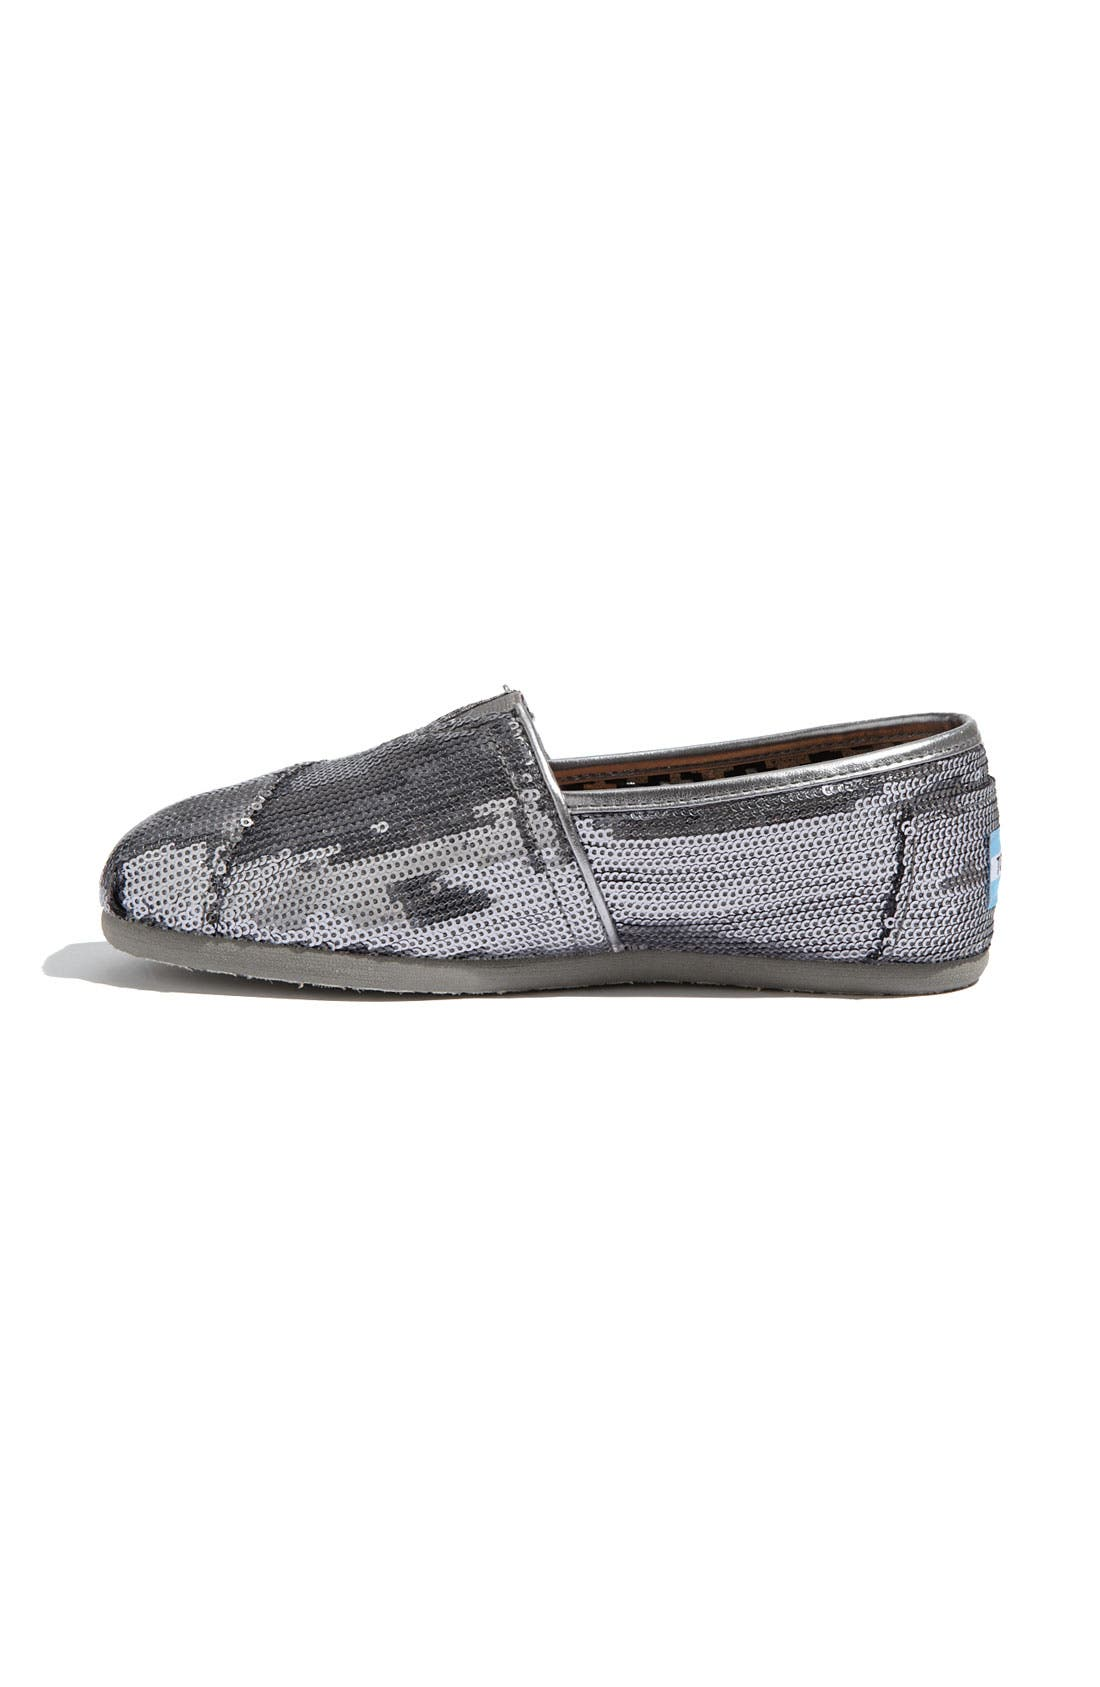 Alternate Image 2  - TOMS 'Classic - Sequins' Slip-On (Women)